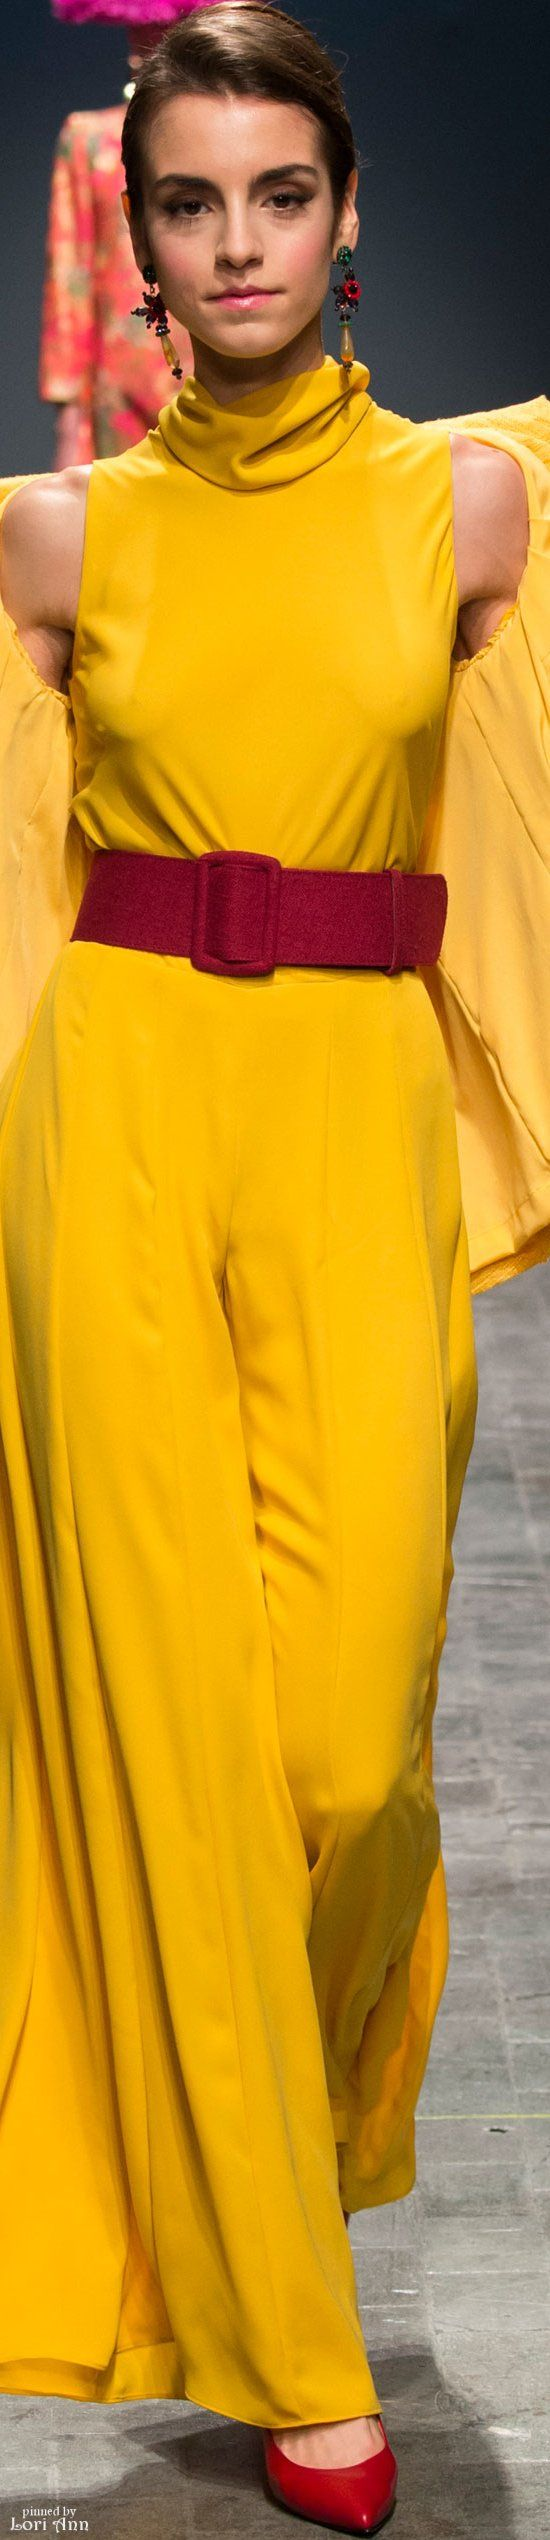 Curiel Couture Spring 2016 yellow maxi dress women fashion outfit clothing style apparel @roressclothes closet ideas